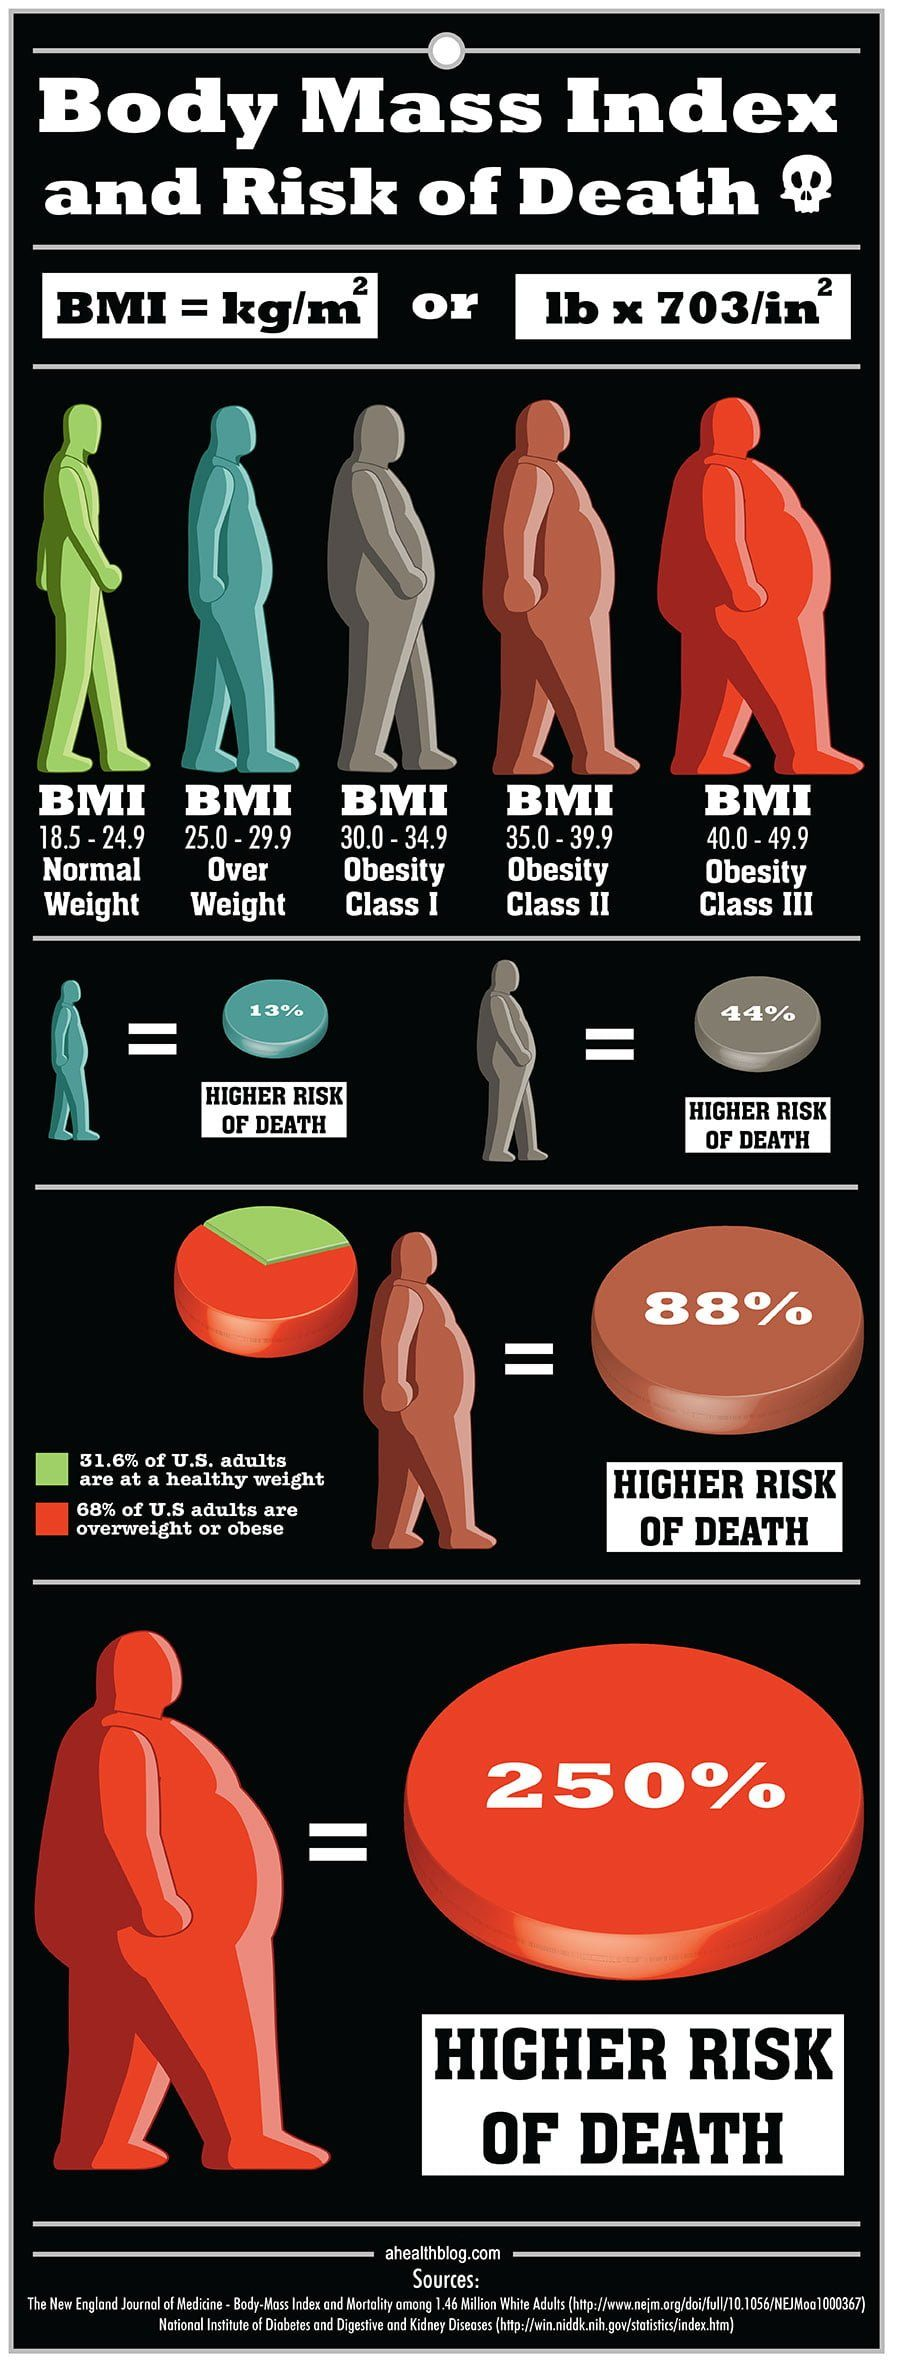 Body Mass Index and Risk of Death Infographic